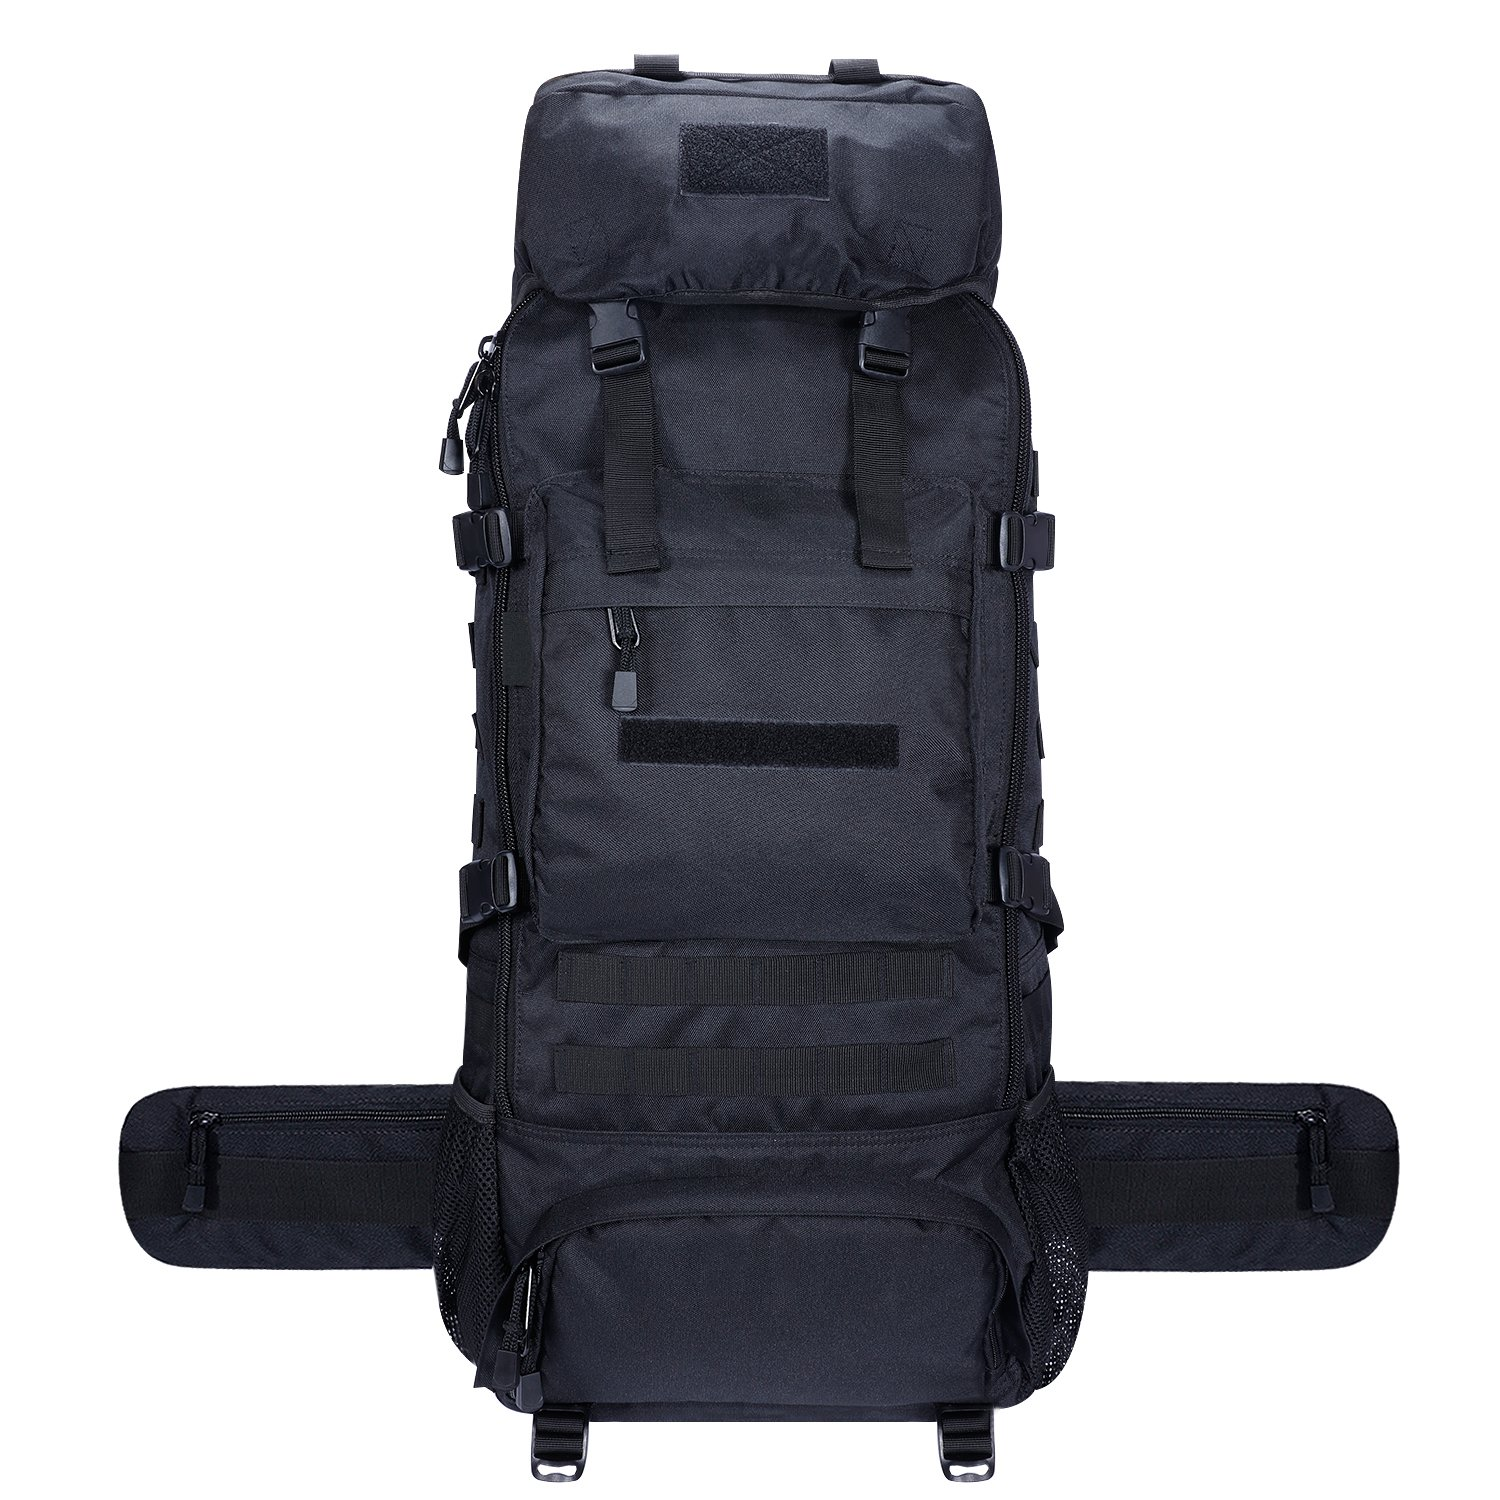 Amazon.com : Gonex Tactical Military Molle Backpack 70L, Oxford ...